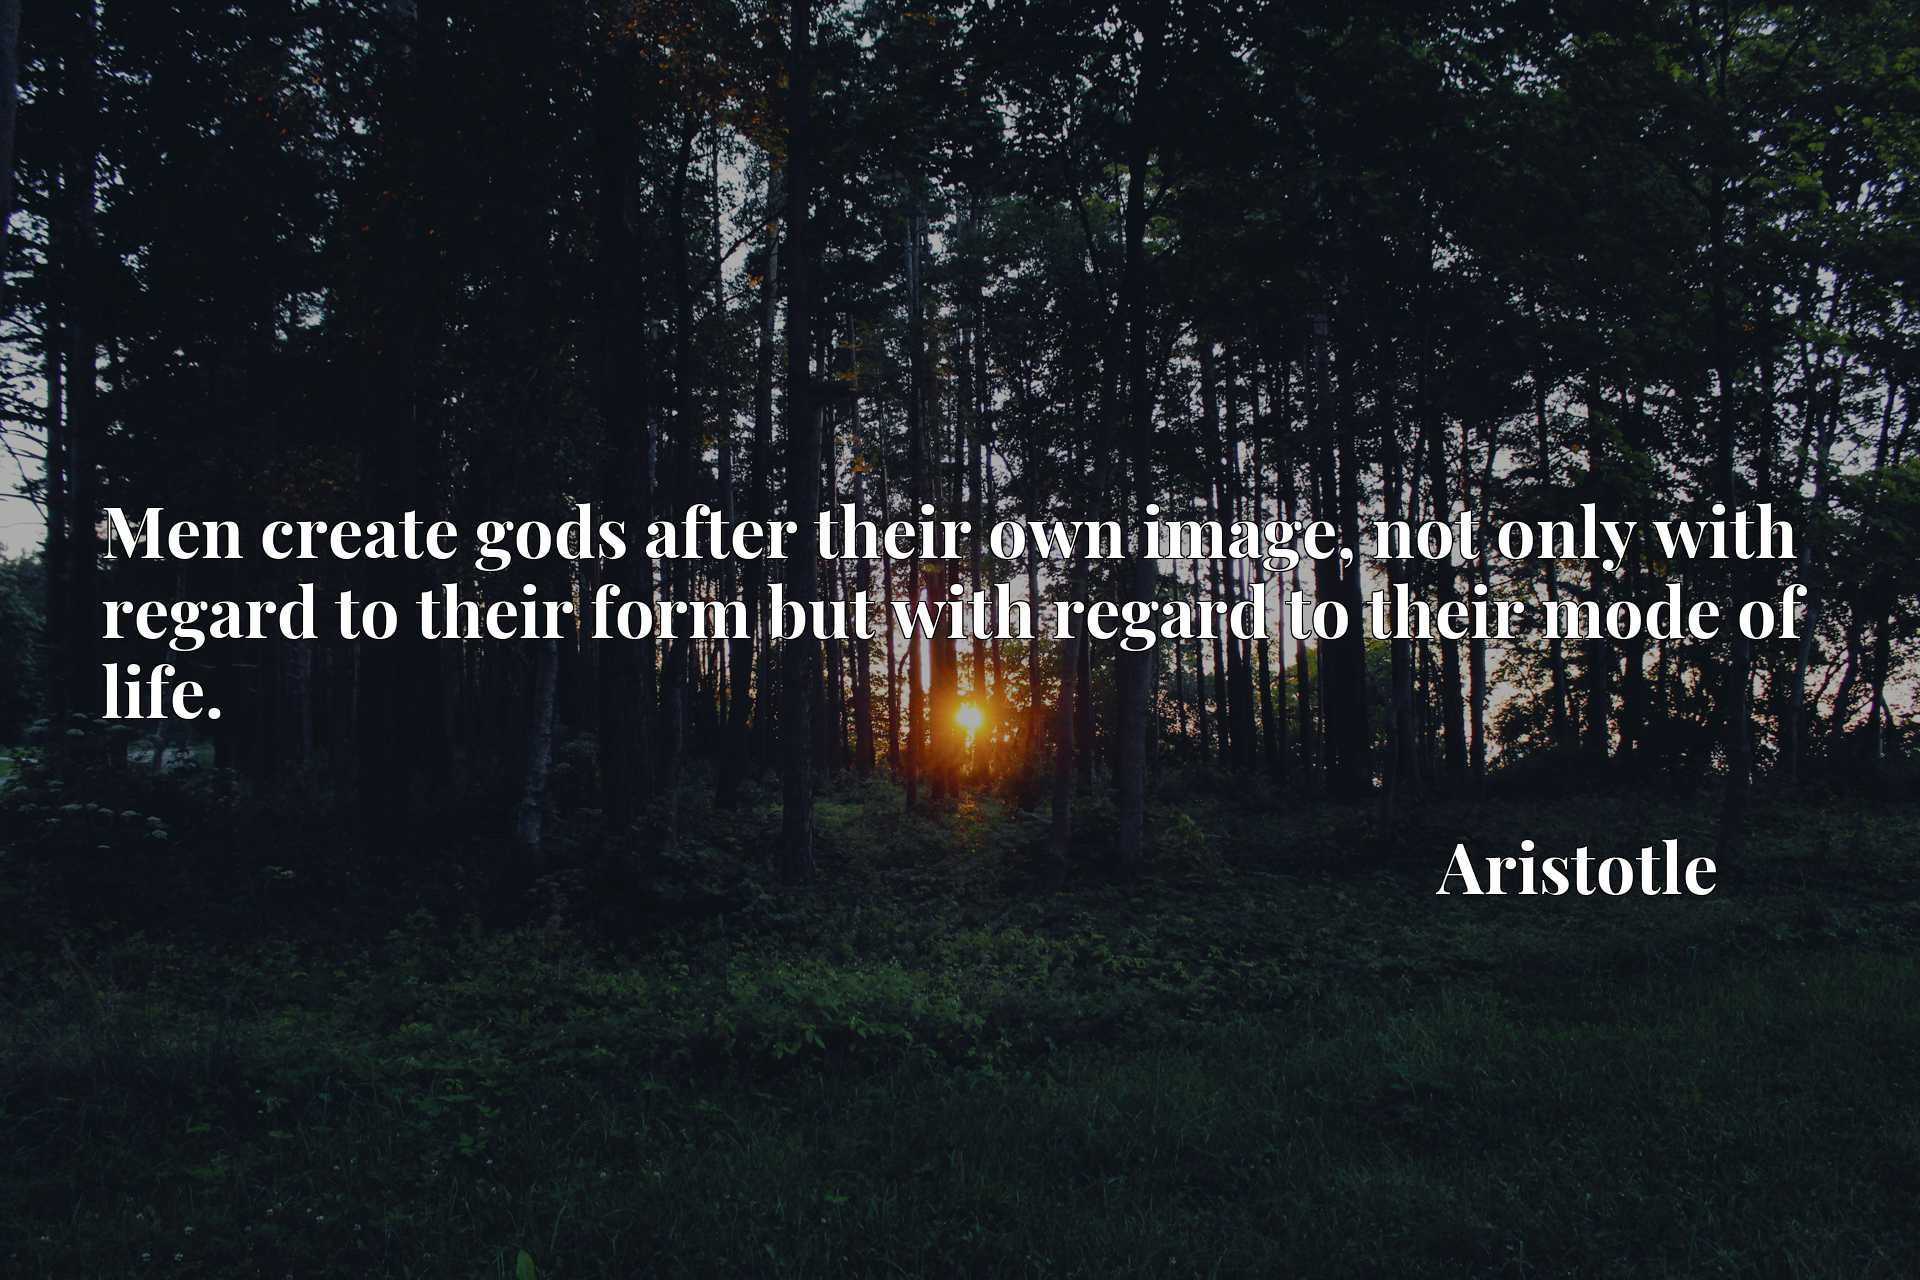 Men create gods after their own image, not only with regard to their form but with regard to their mode of life.